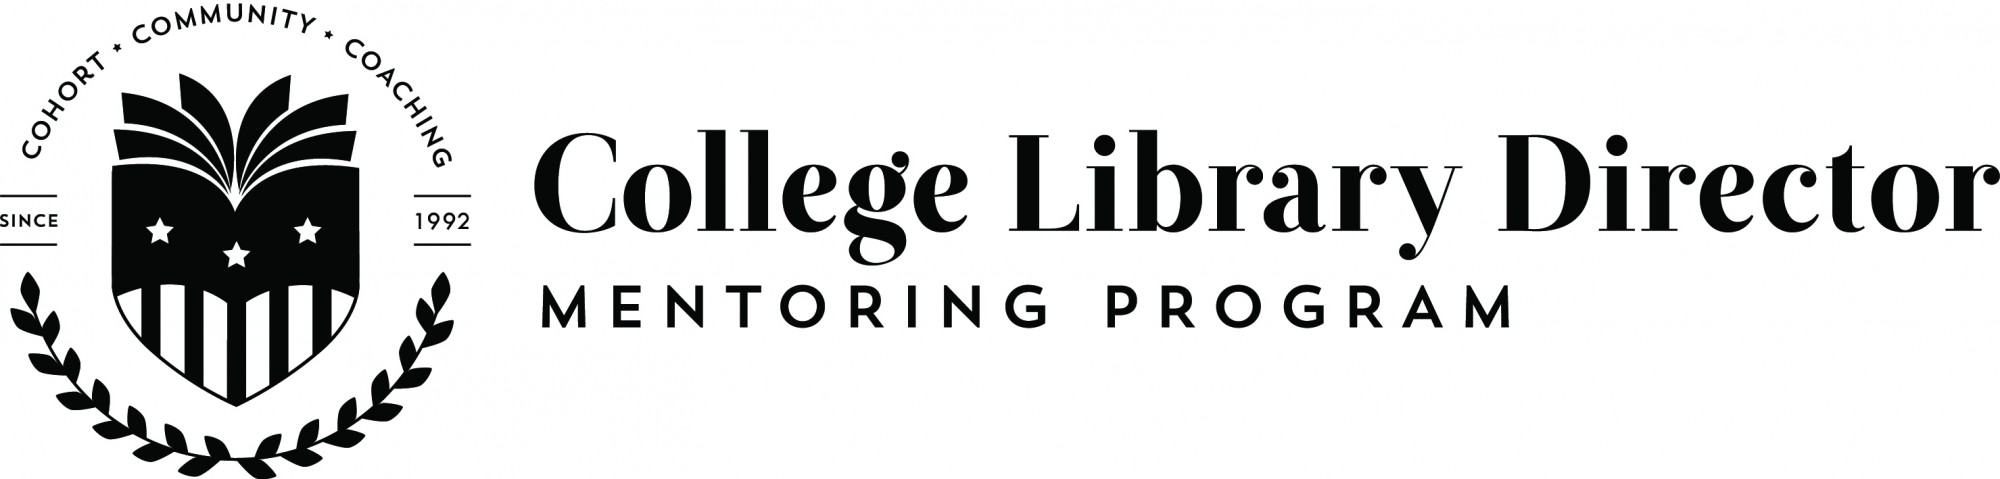 College Library Director Mentoring Program  Coaching